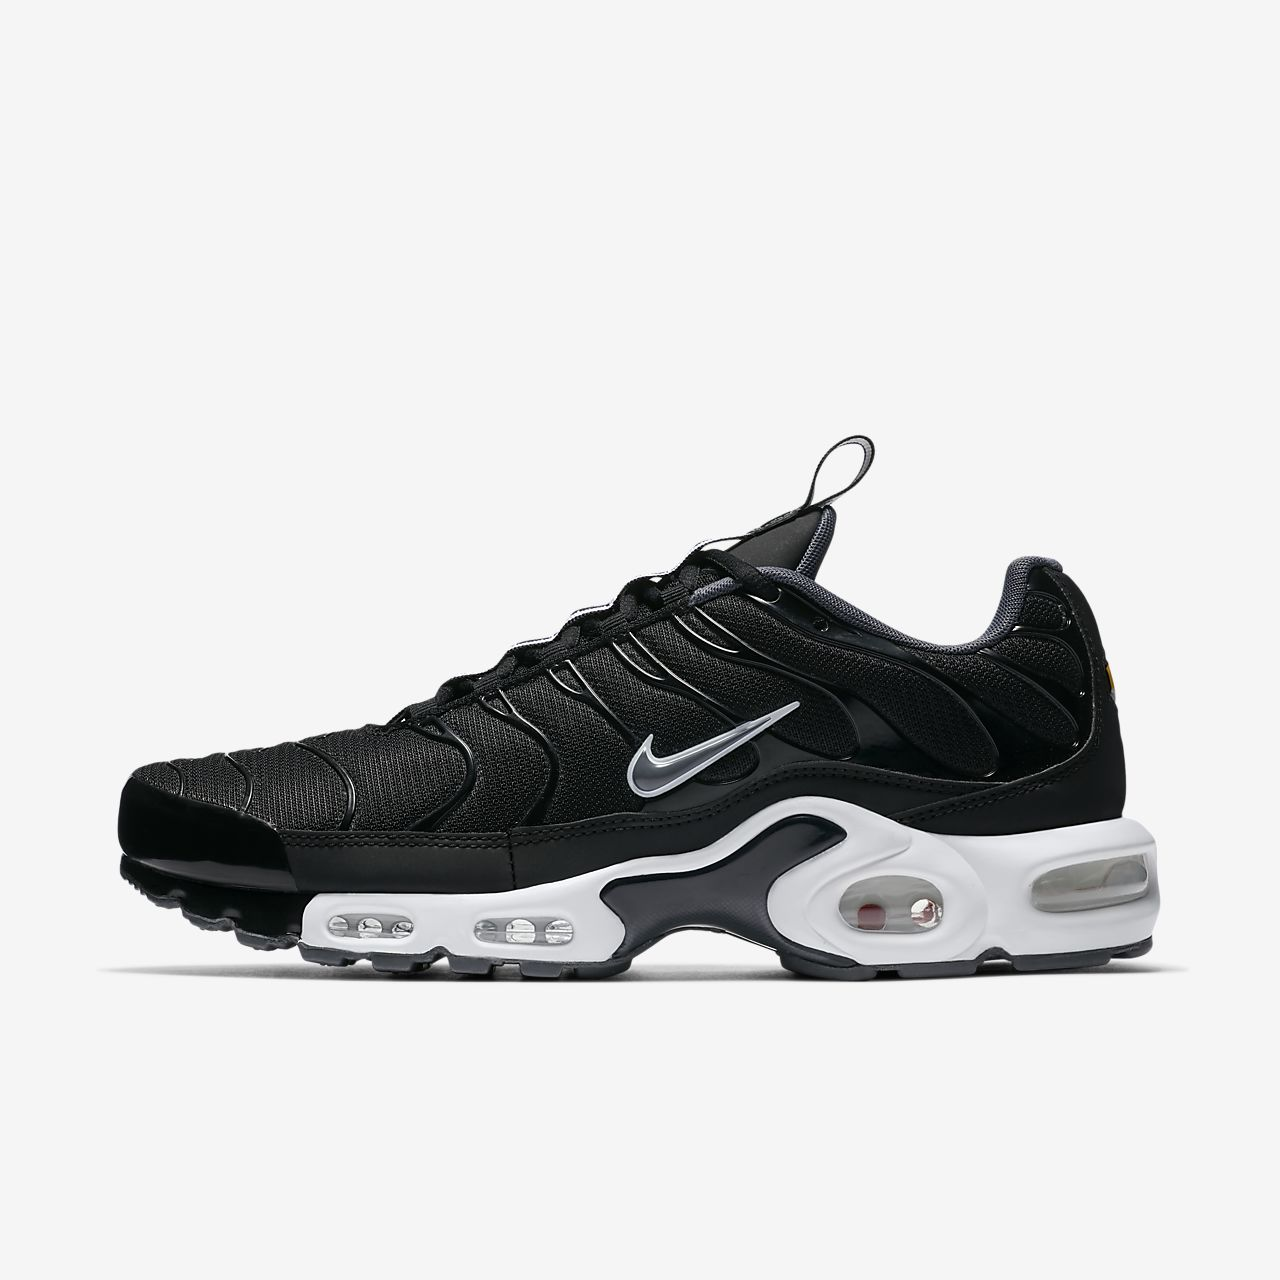 d3dda7d7b30 nike air max plus tn dames